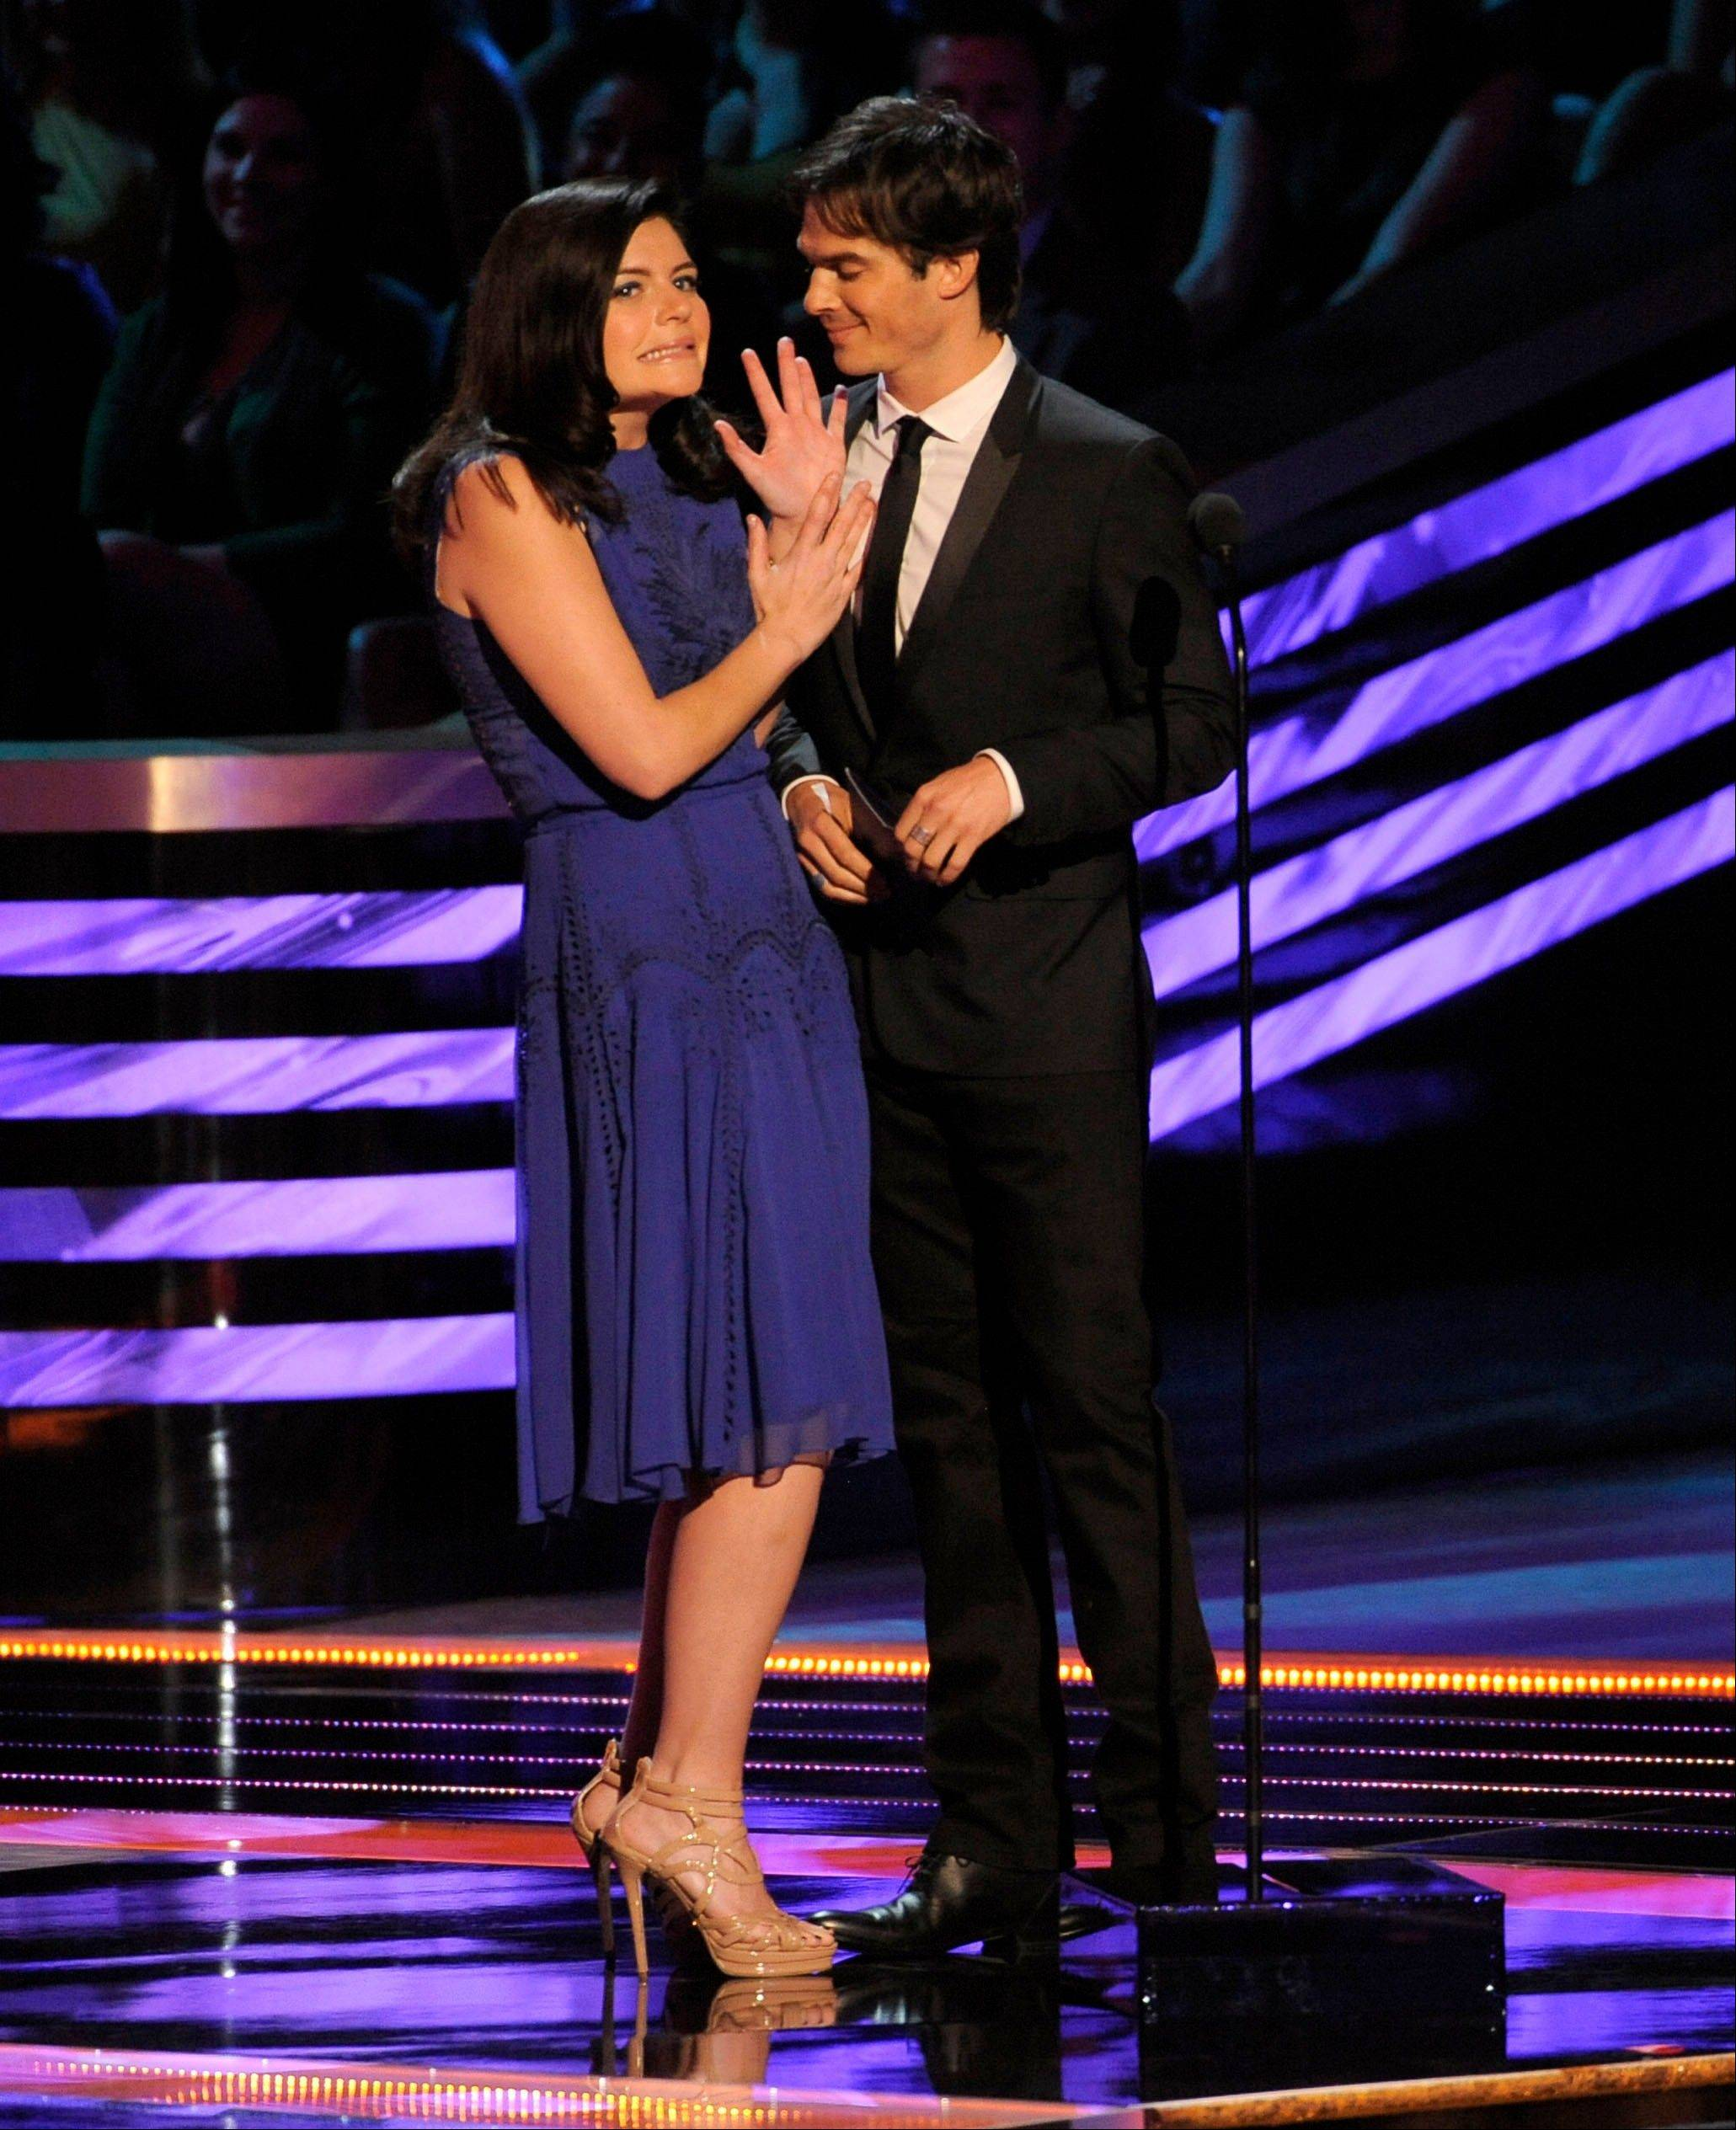 Casey Wilson, left, and Ian Somerhalder present the award for favorite comedic actor at the People's Choice Awards at the Nokia Theatre on Wednesday Jan. 9, 2013, in Los Angeles.